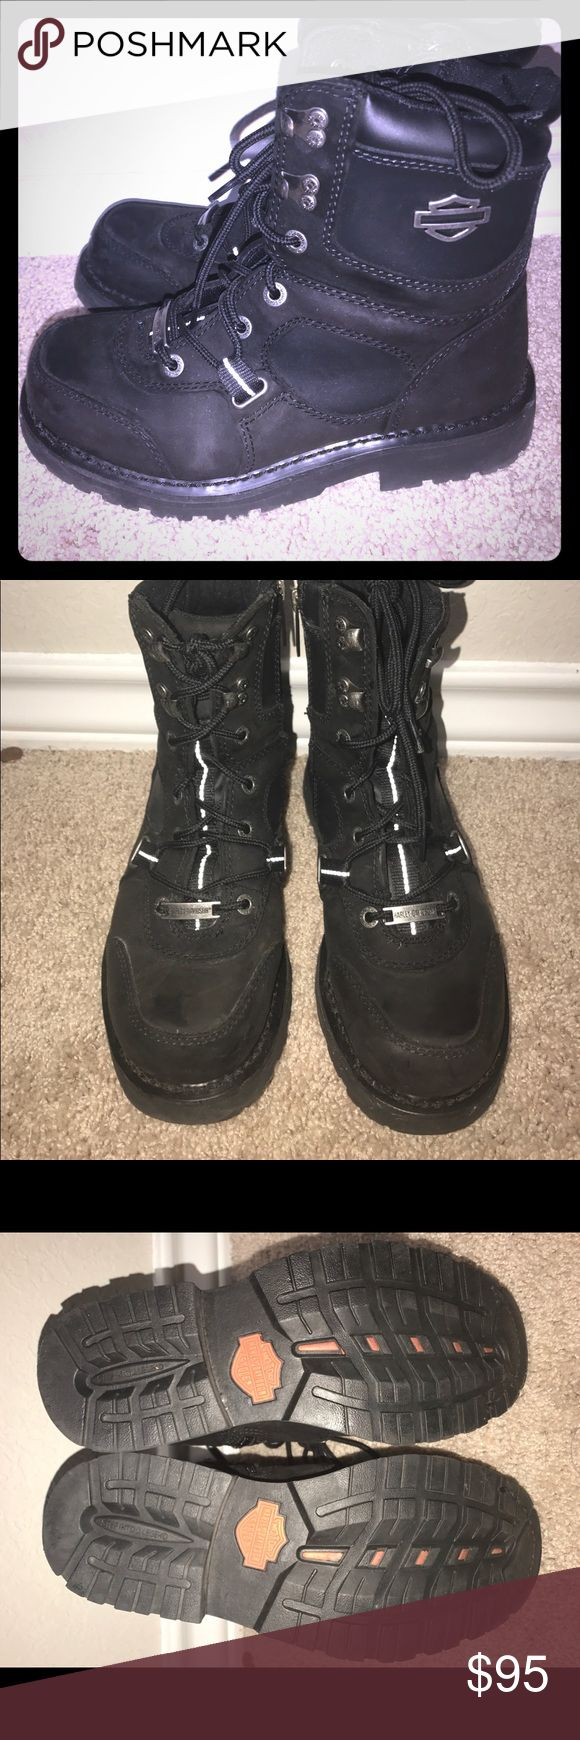 Harley Davidson Women's Boots size 9 Women's Harley Davidson boots. Size 9. Worn only a handful of times. They are in like new condition. Reasonable offers always considered! 🙂 Harley-Davidson Shoes Combat & Moto Boots